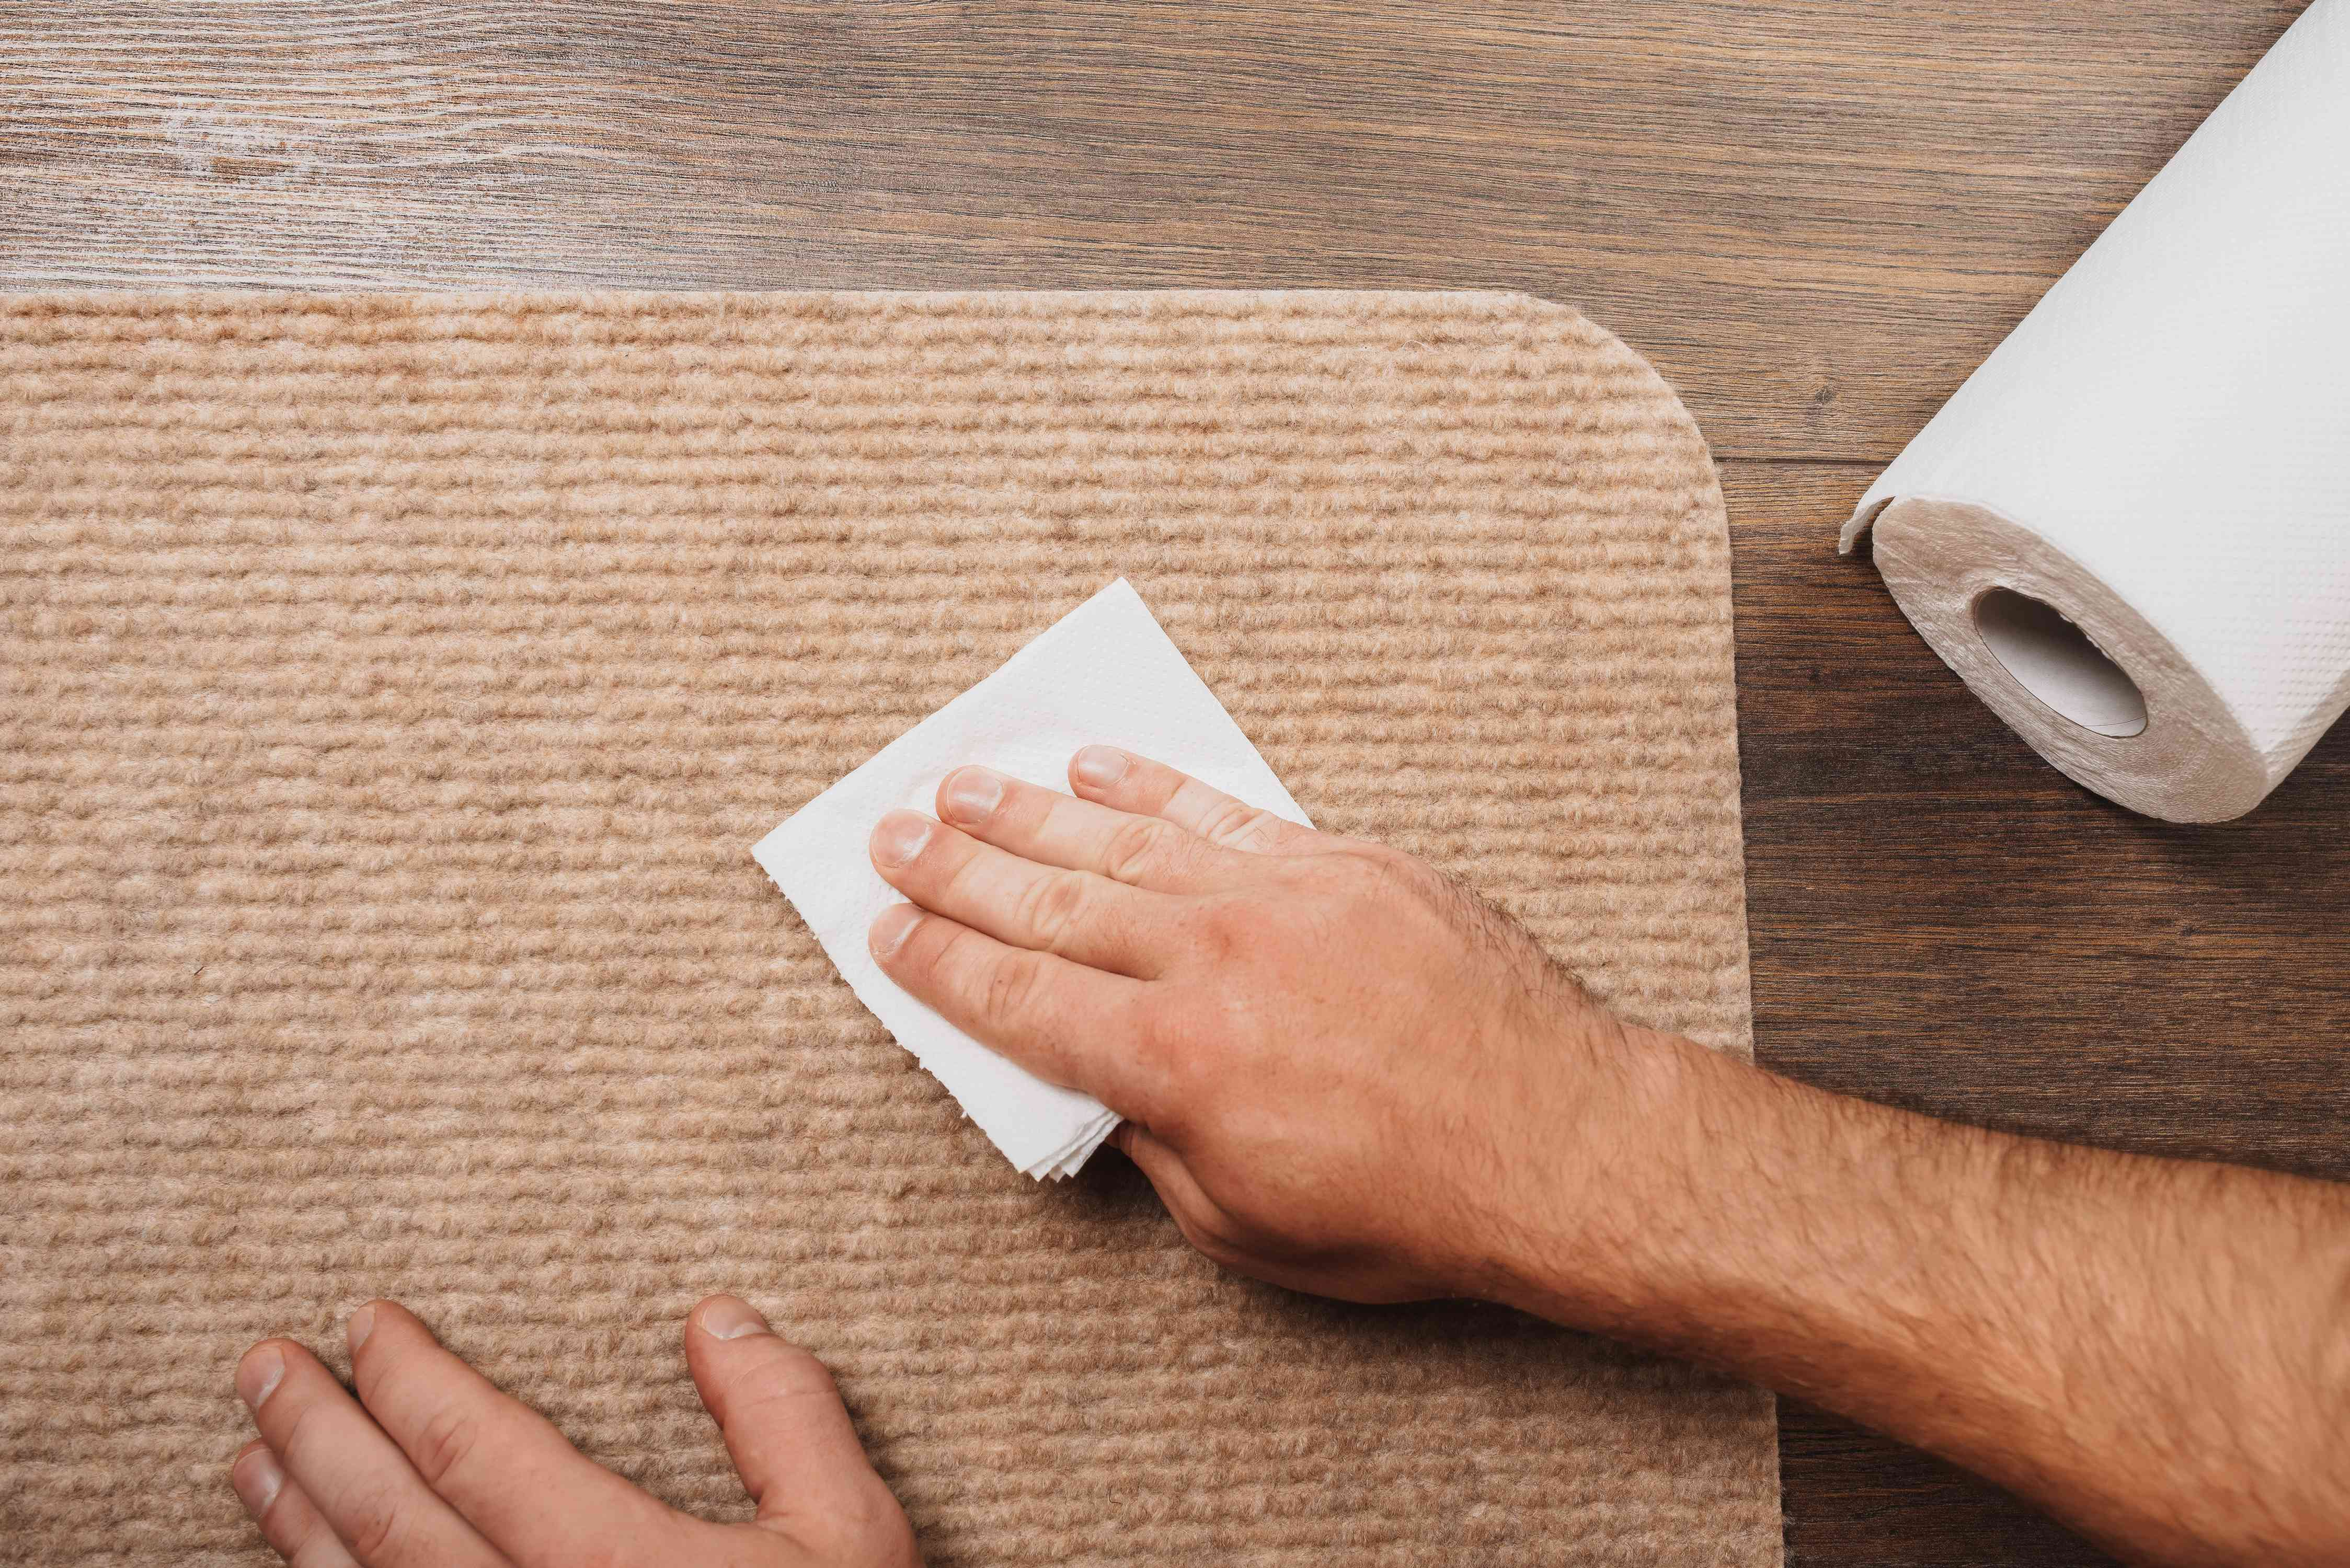 blotting a rug with a paper towel